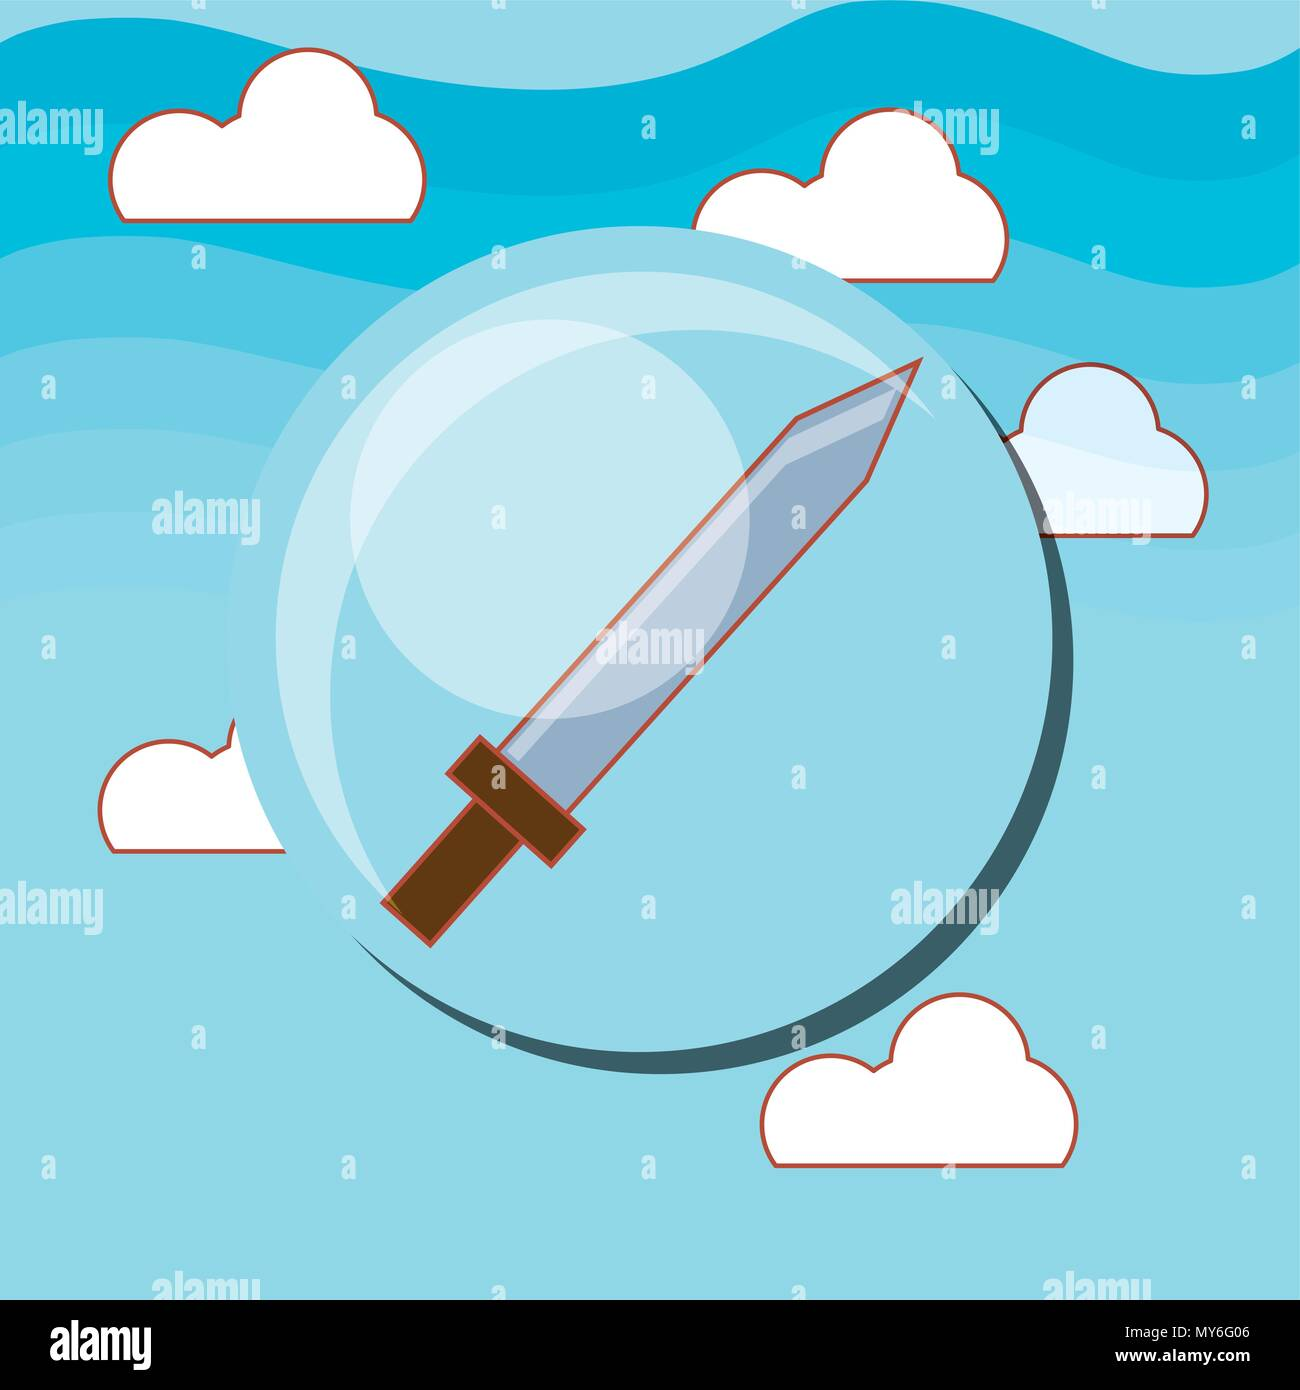 sword icon over sky background, colorful design. vector illustration - Stock Vector